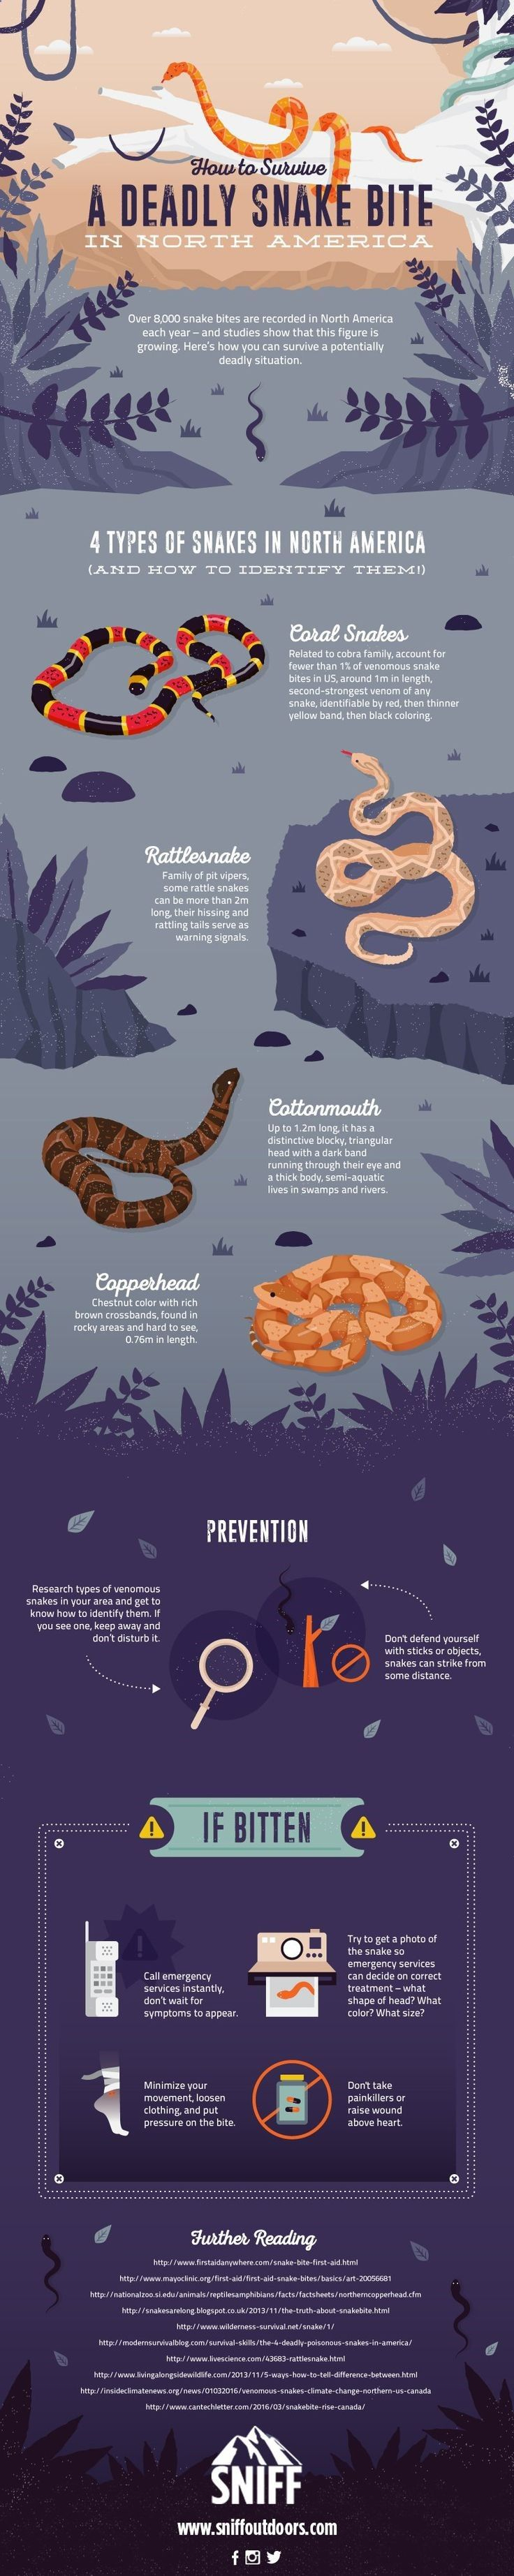 Survive Snake Bites with This Helpful Infographic | How To Identify and What to do if you encounter a Poisonous Snake, check it out at survivallife.com/...